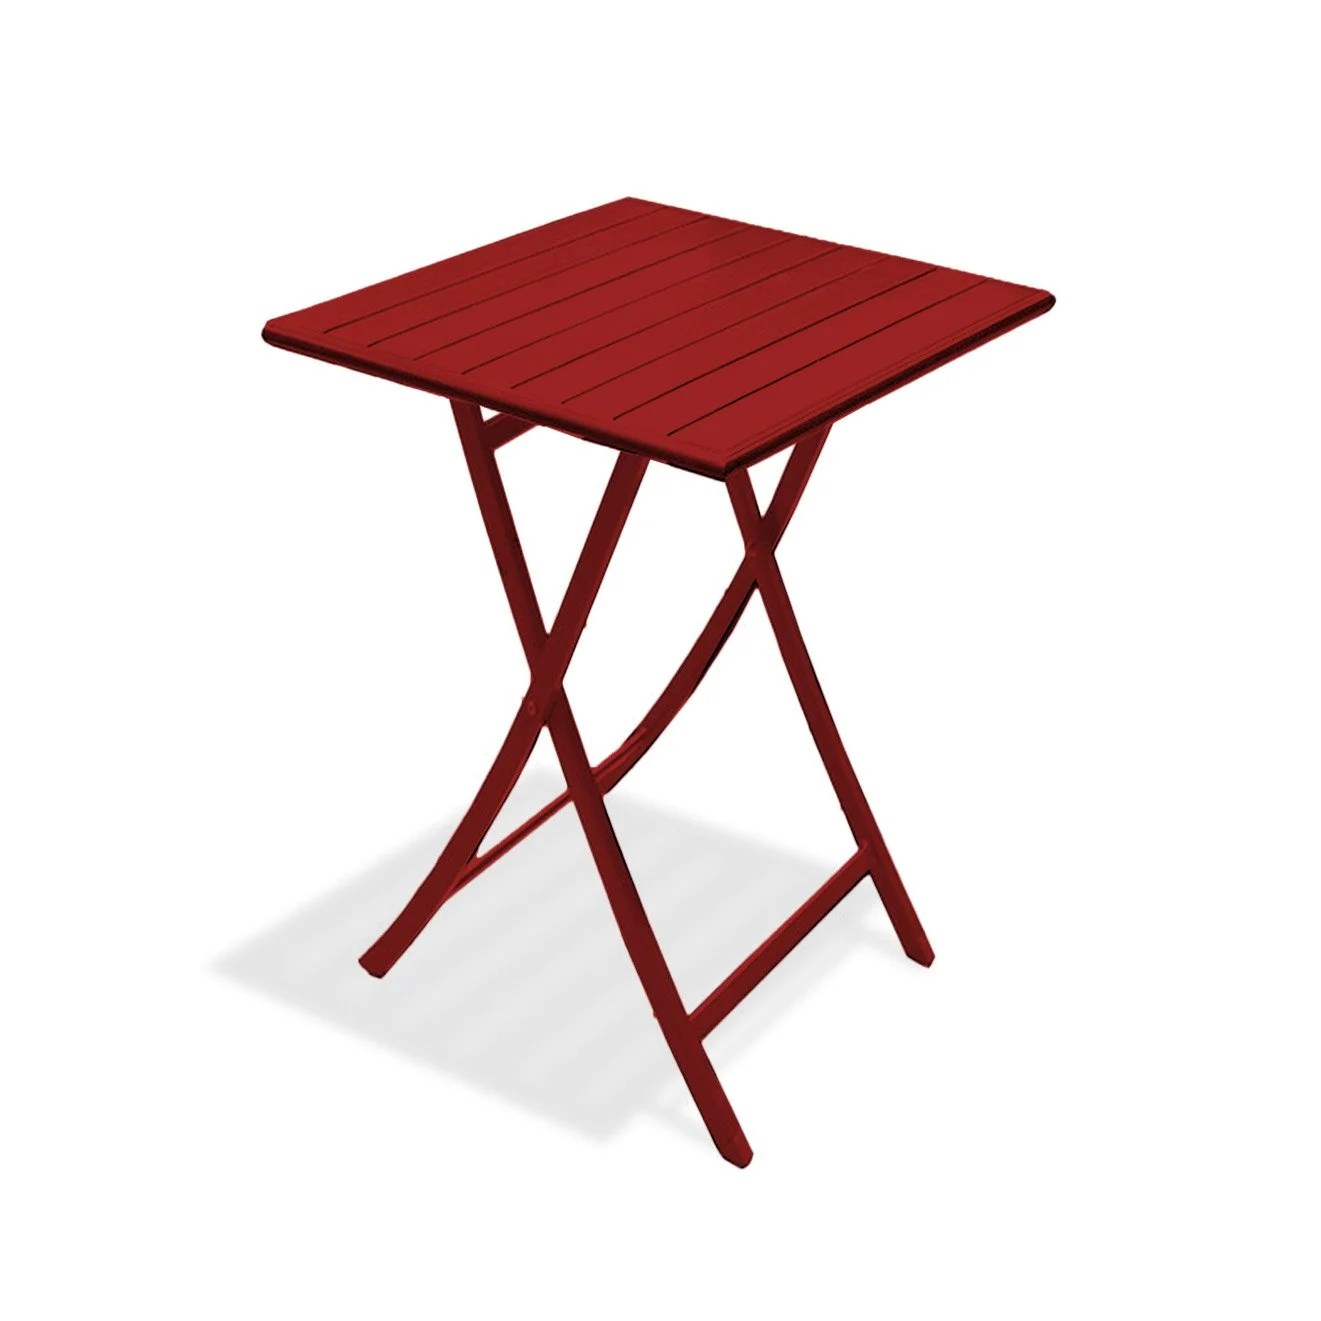 Table De Jardin Rouge Table De Jardin Marius Carrée Rouge 2 Personnes